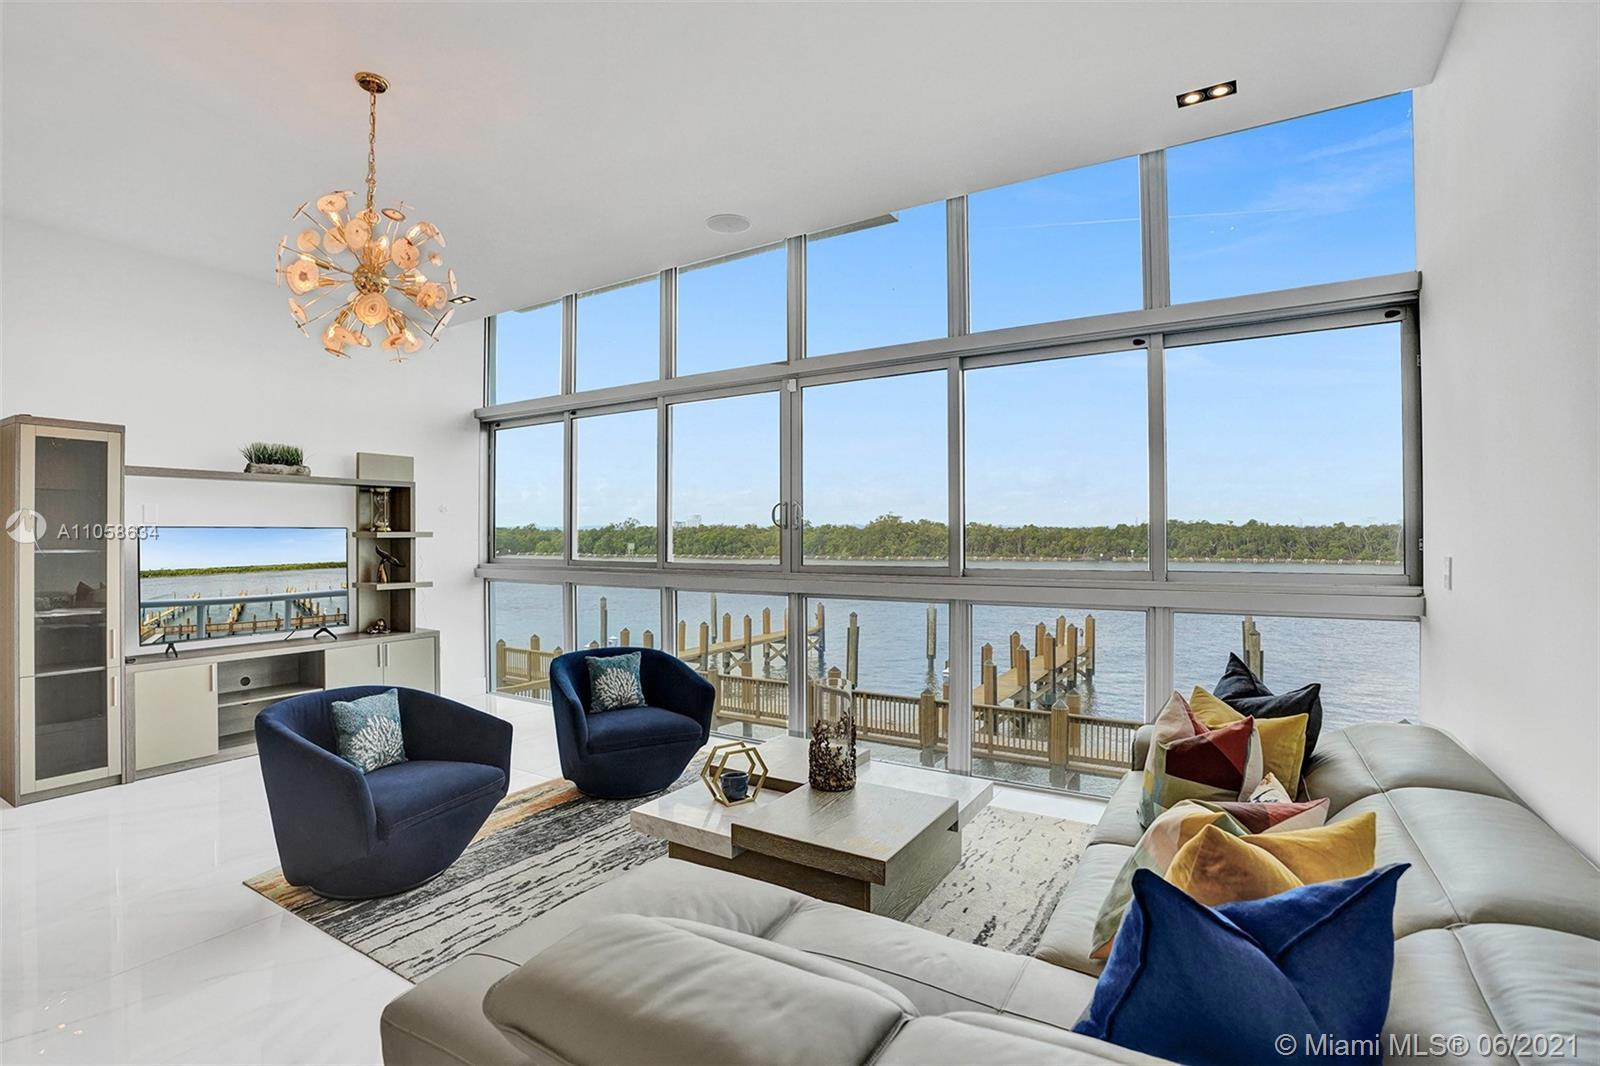 Quint Collection Hollywood, 10 luxury gated waterfront townhomes with a private marina & unobstructe